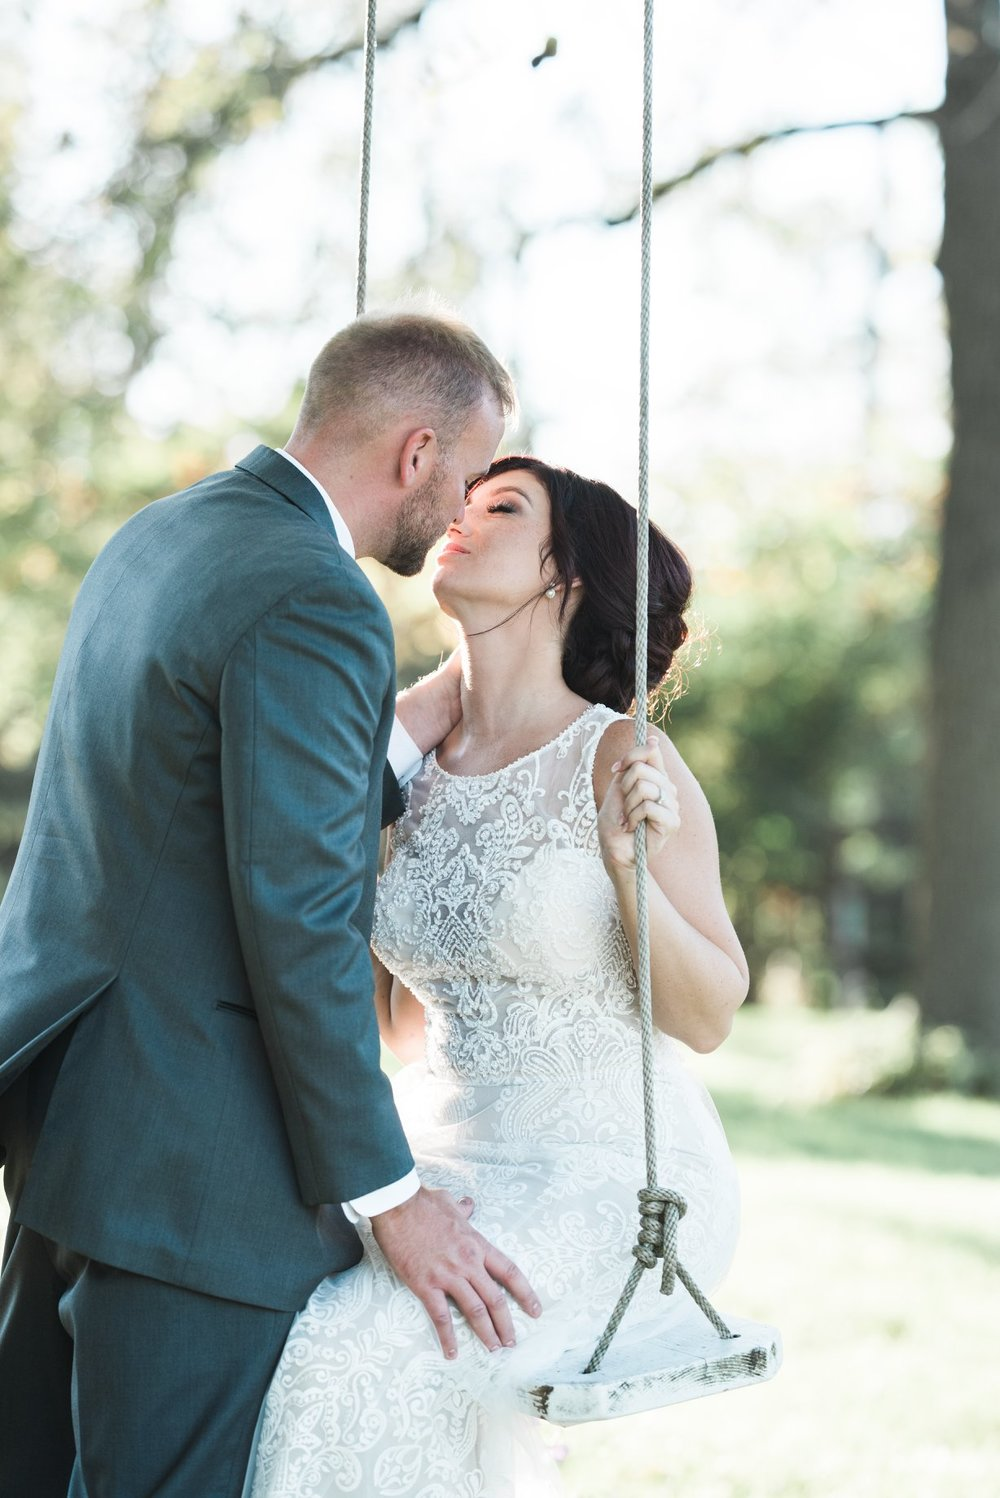 Outdoor Wedding First Look Moment